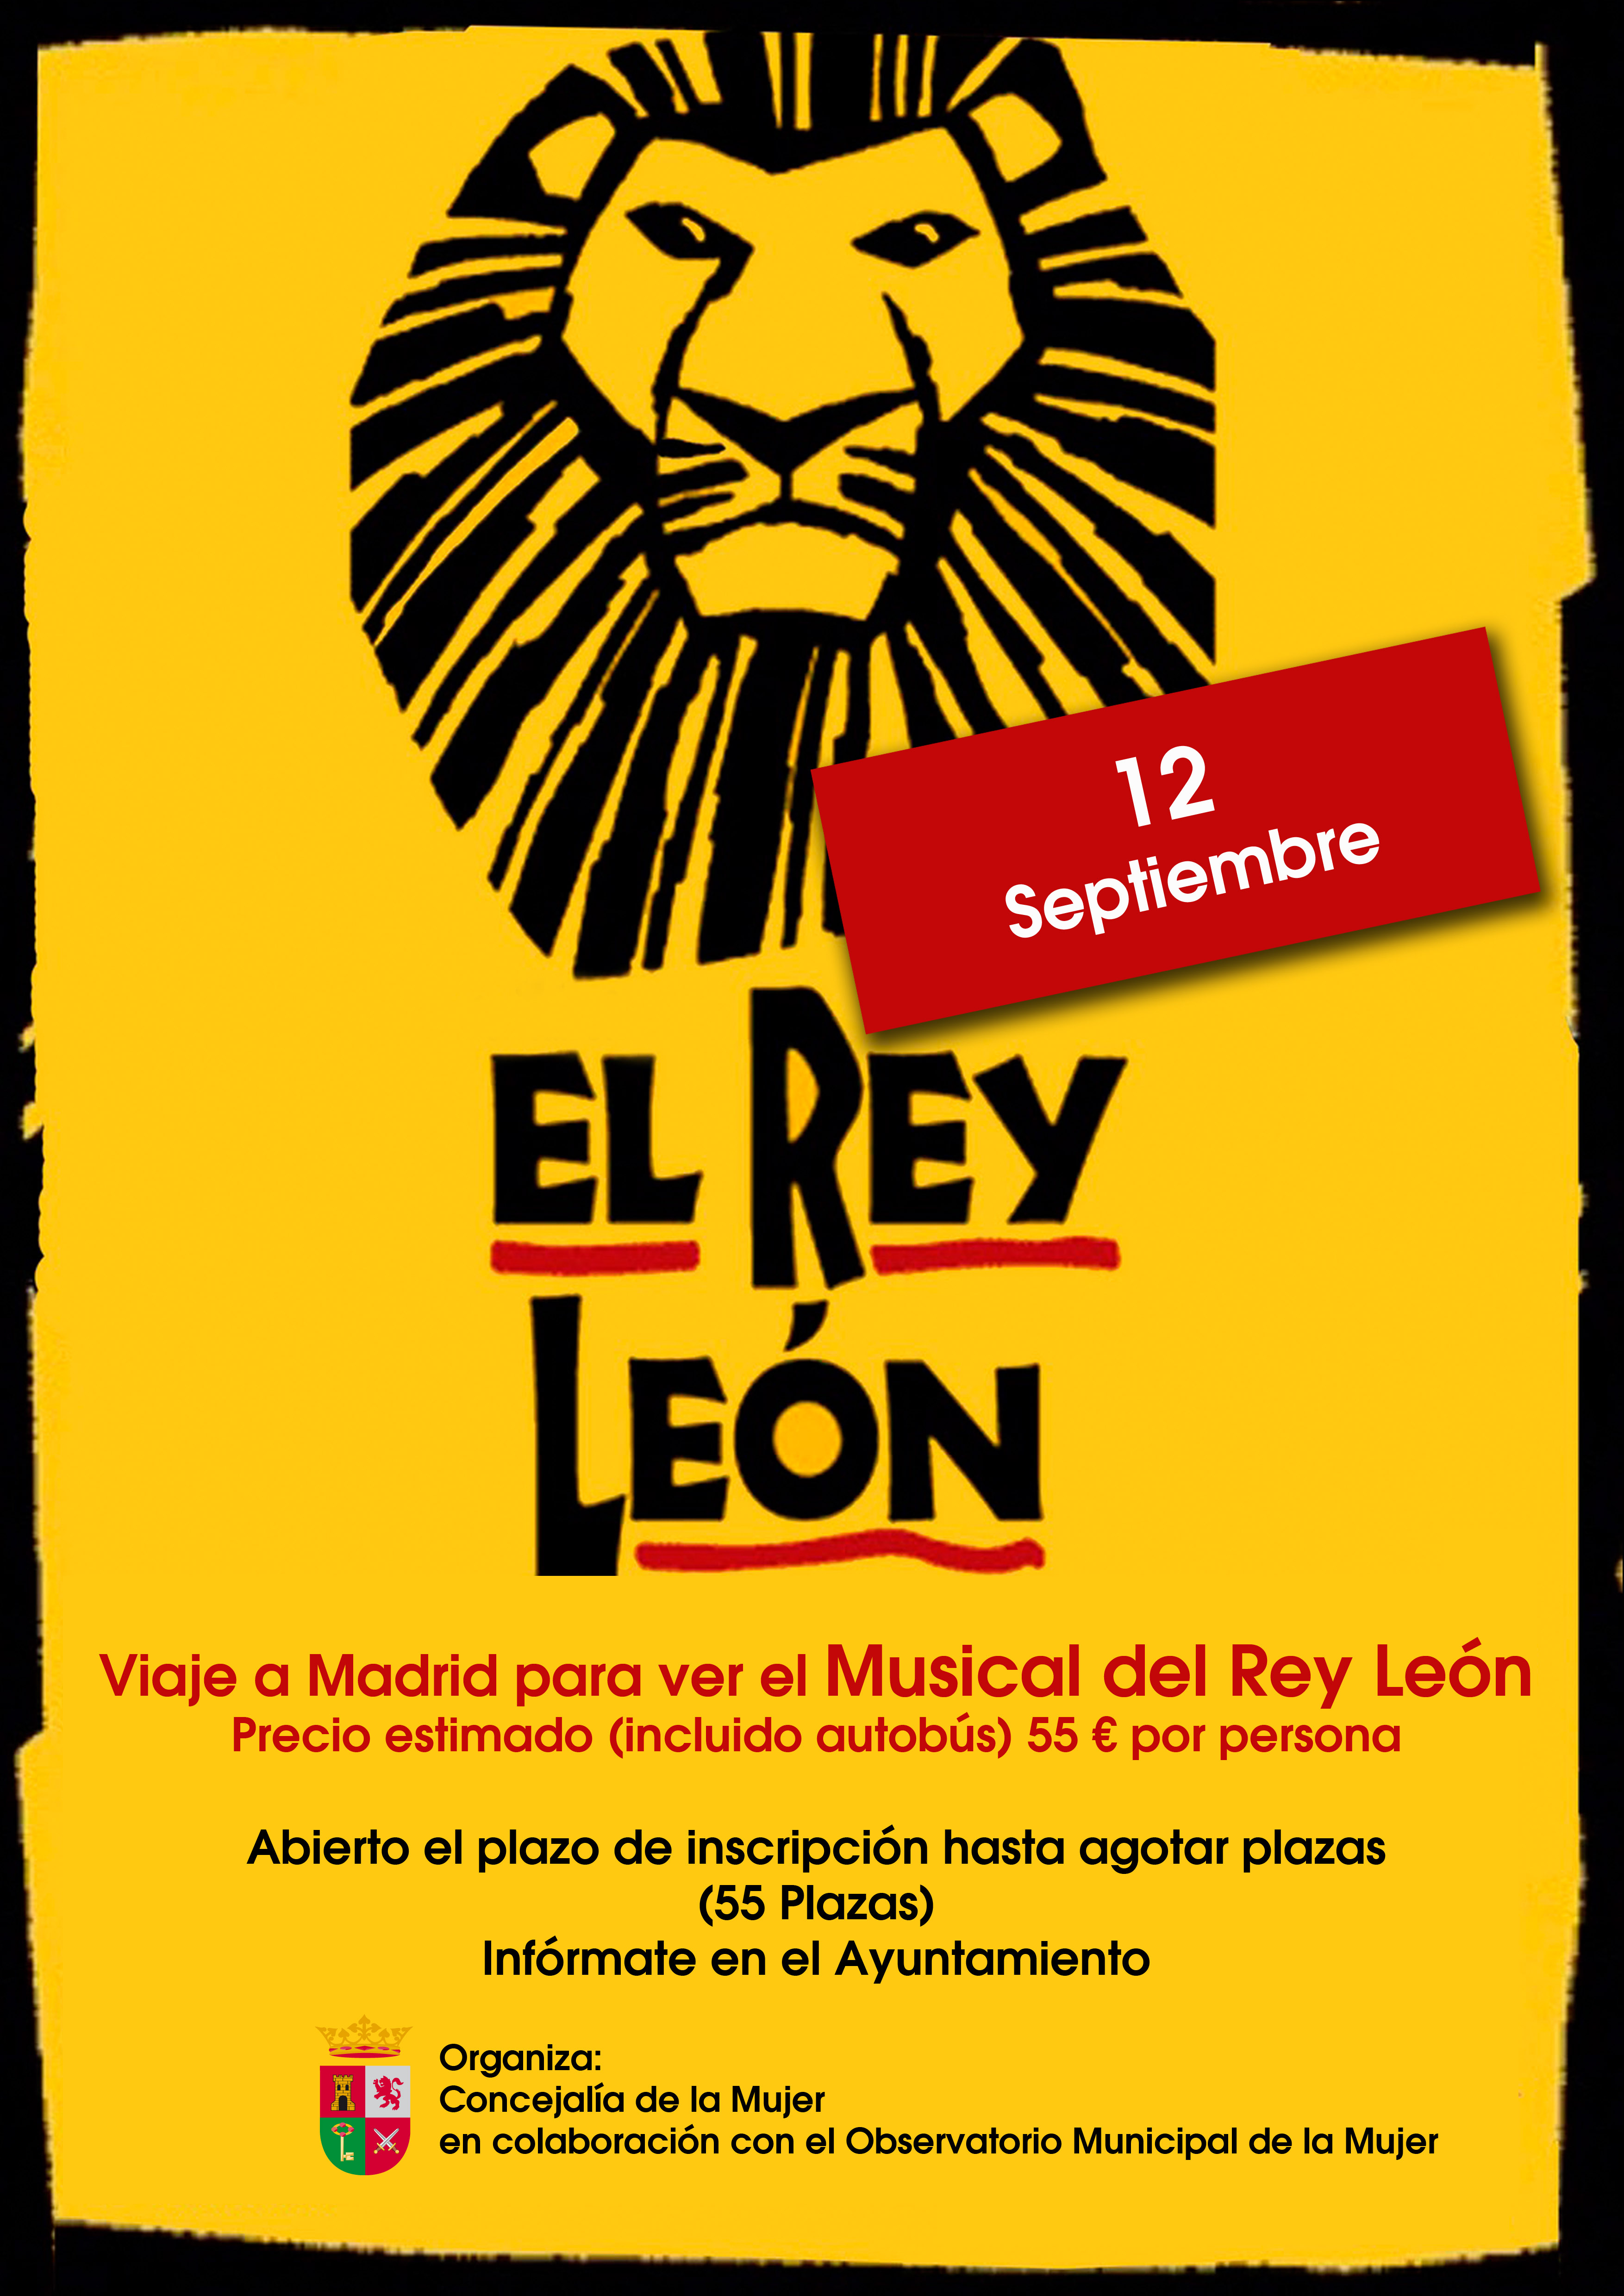 El Rey Leon Opiniones Butacas 1000 43 Images About Hockey Logo On Pinterest Lion Hockey